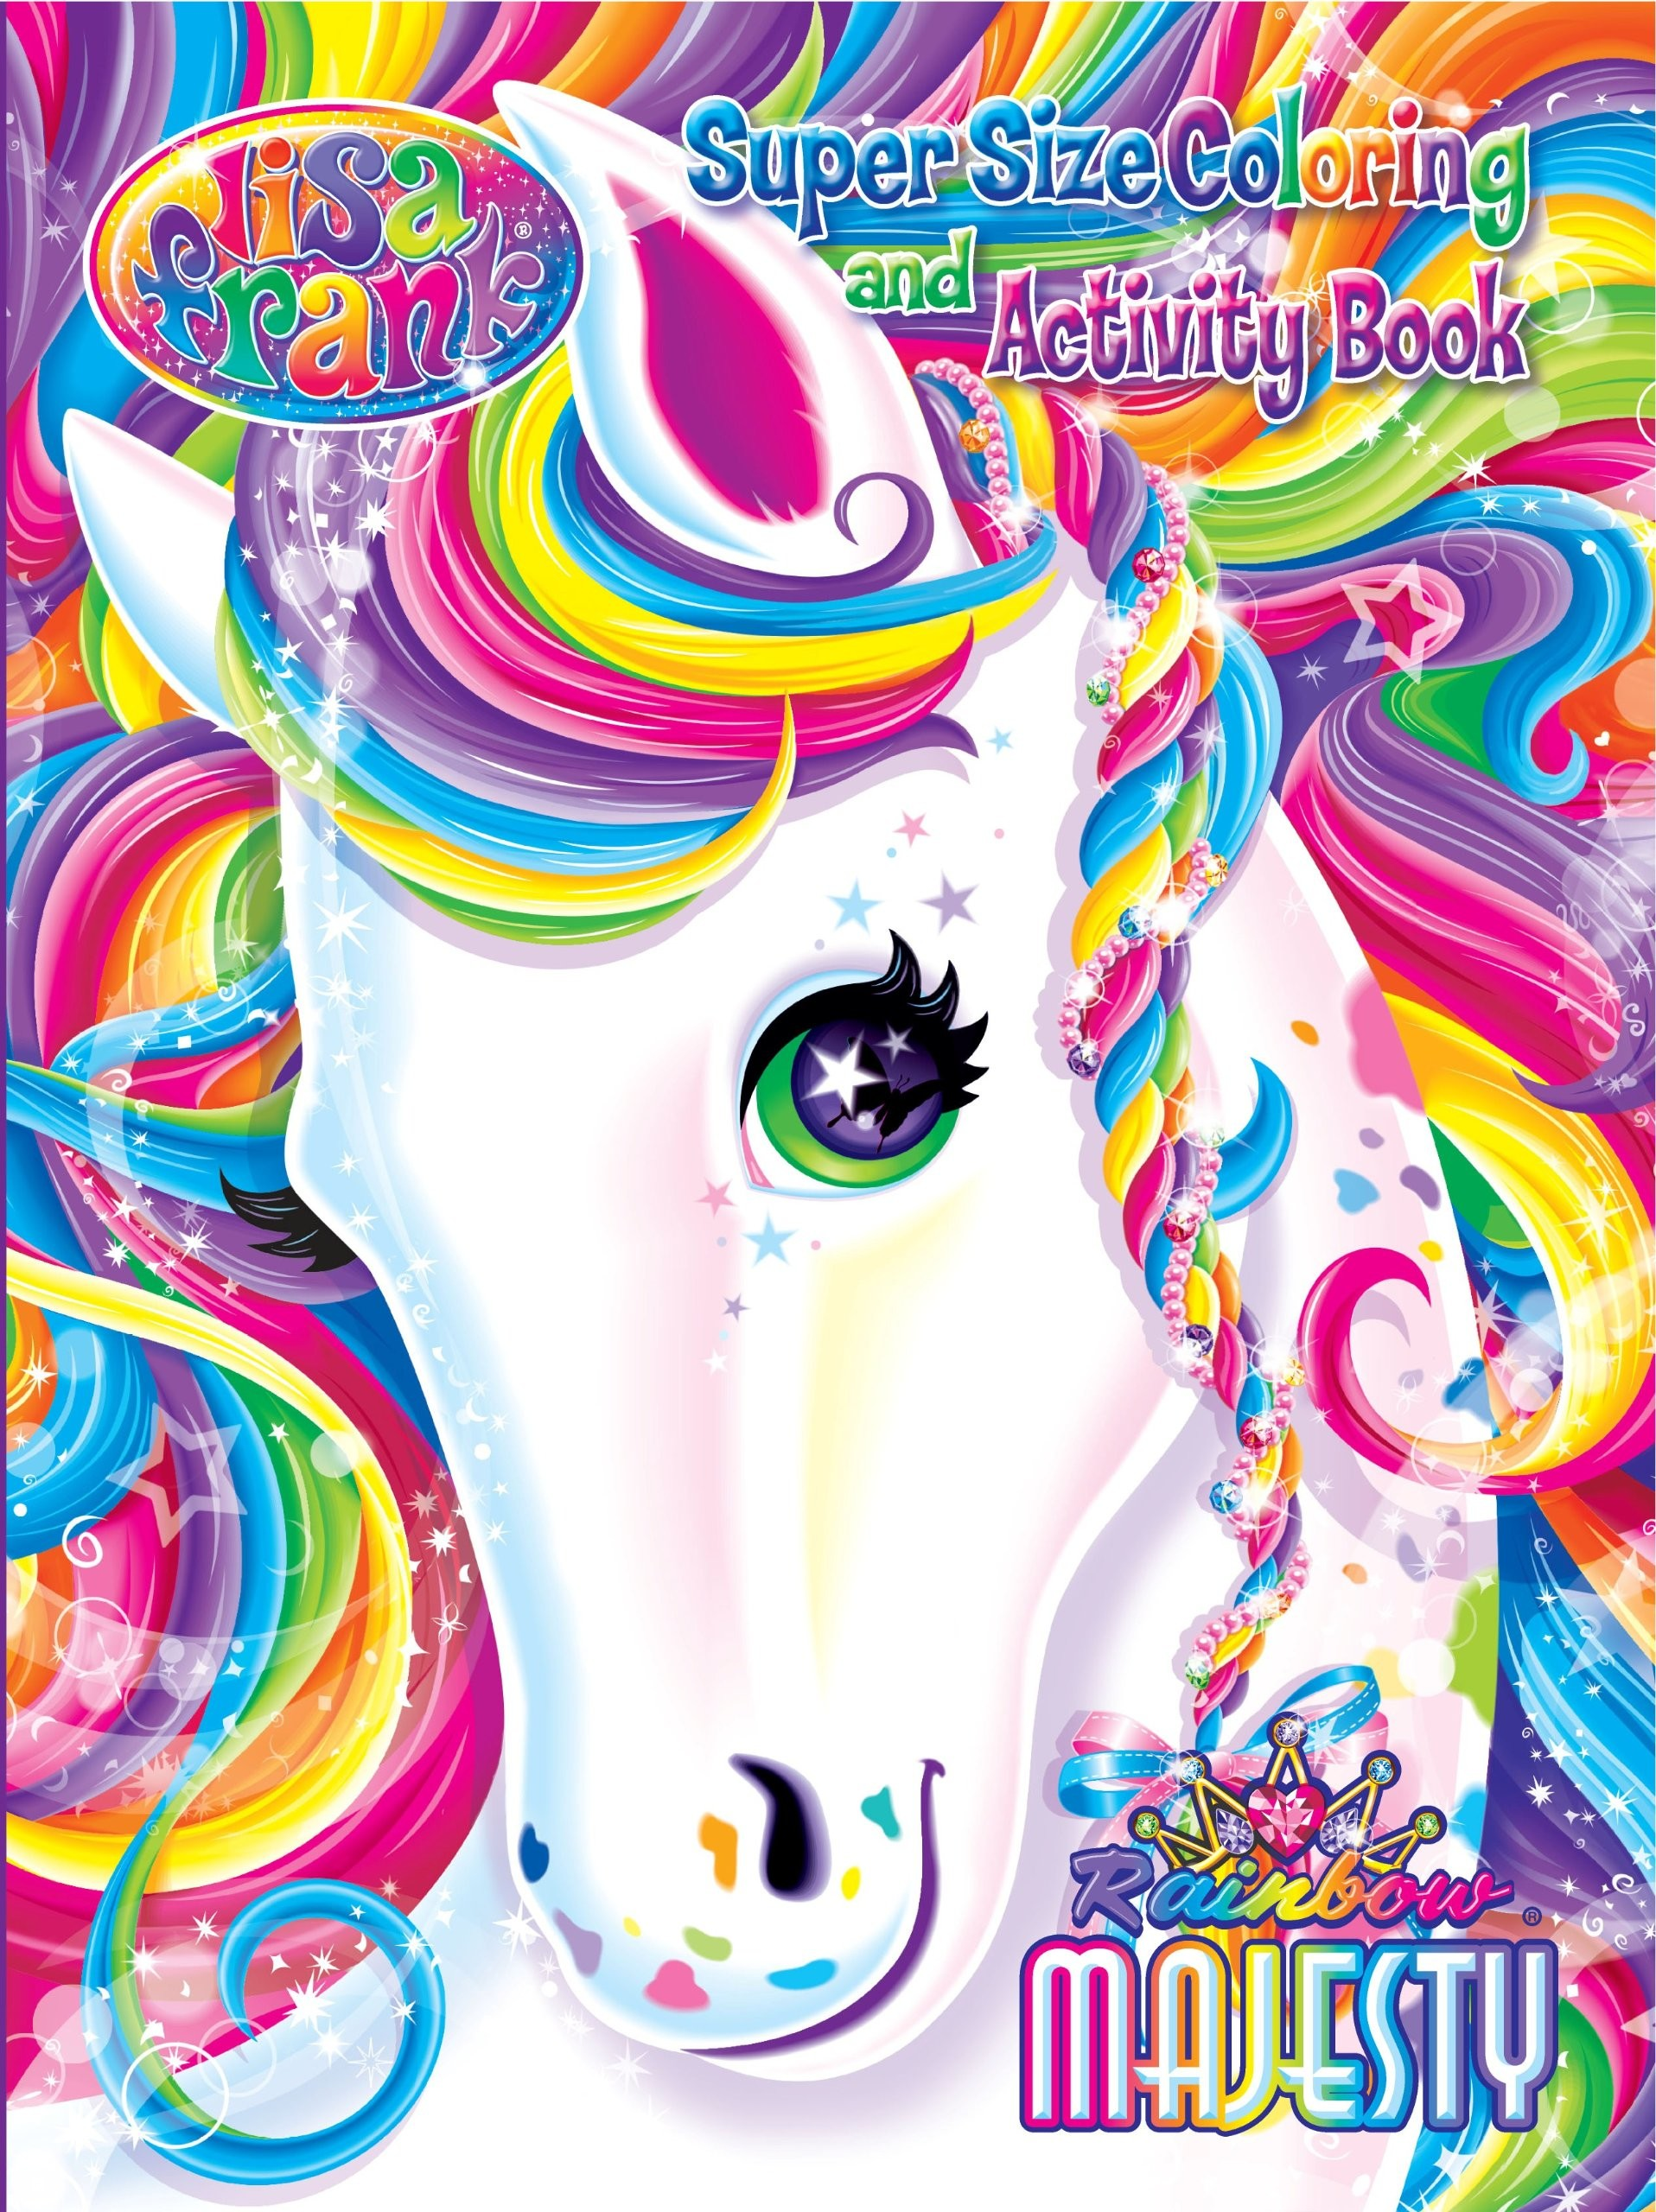 Lisa frank still my favorite coloring book! Love her stickers too!